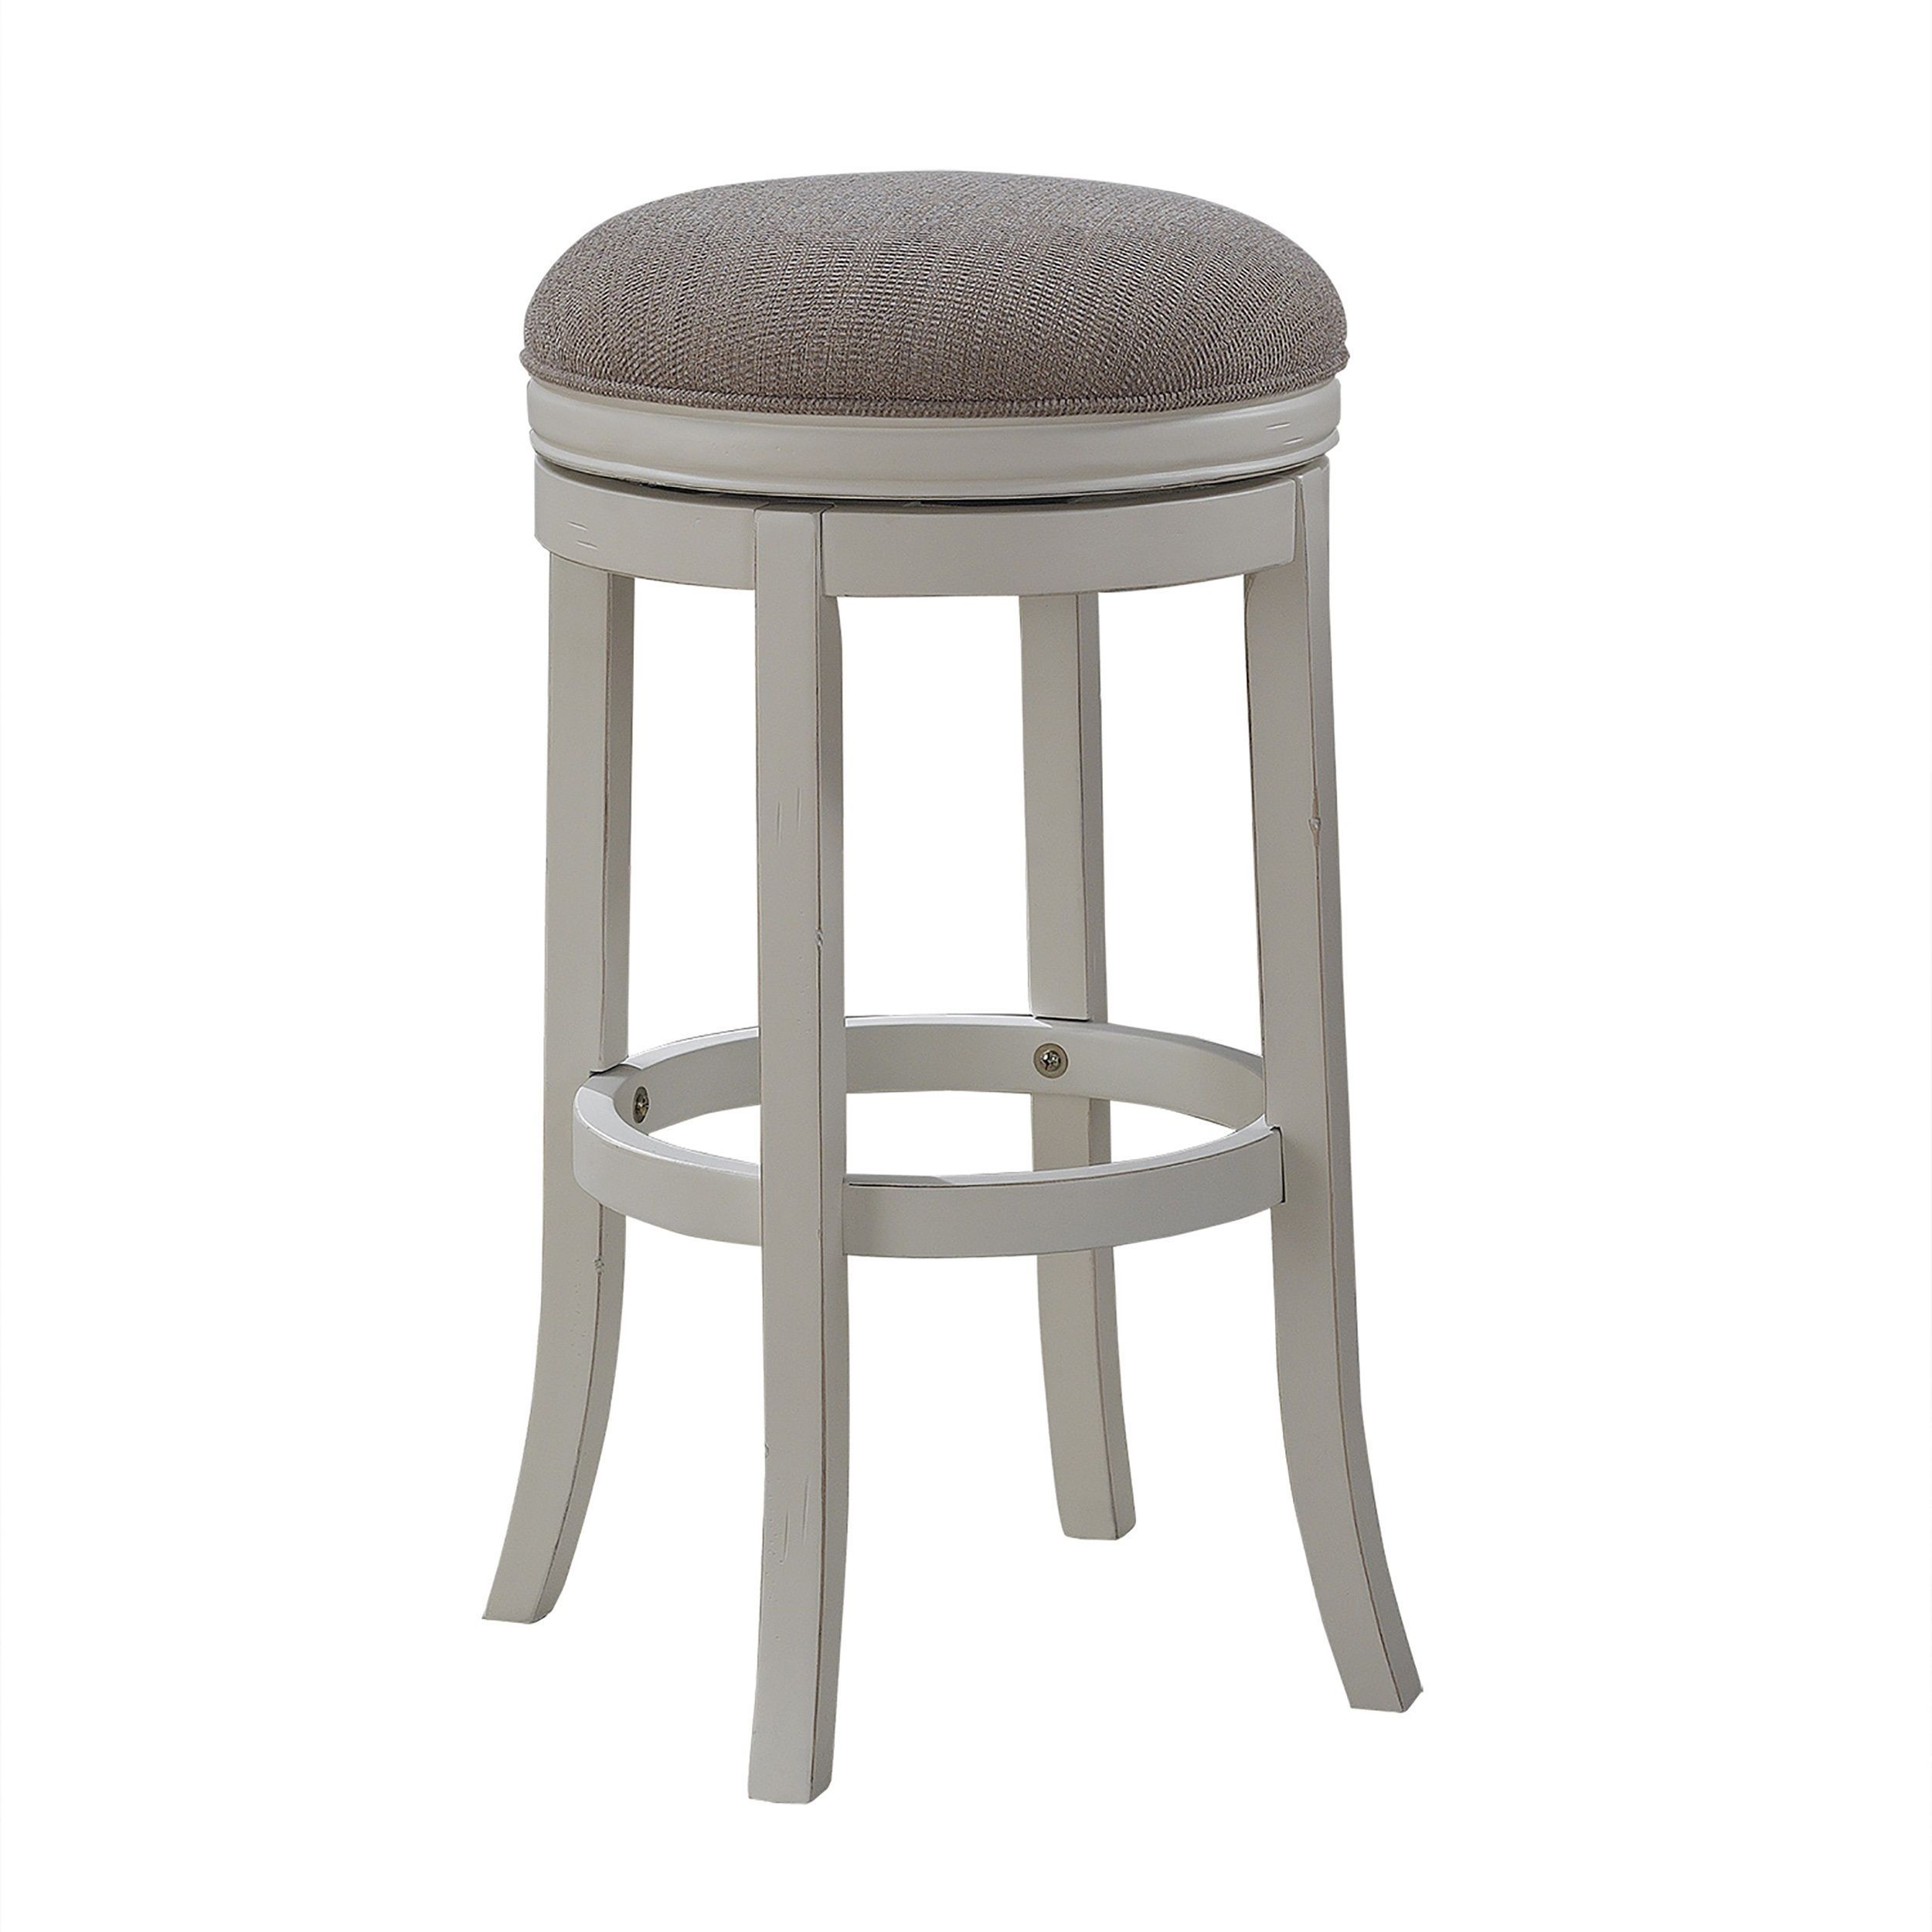 The Coastal Style Of The Pesaro Counter Stool Is Evident